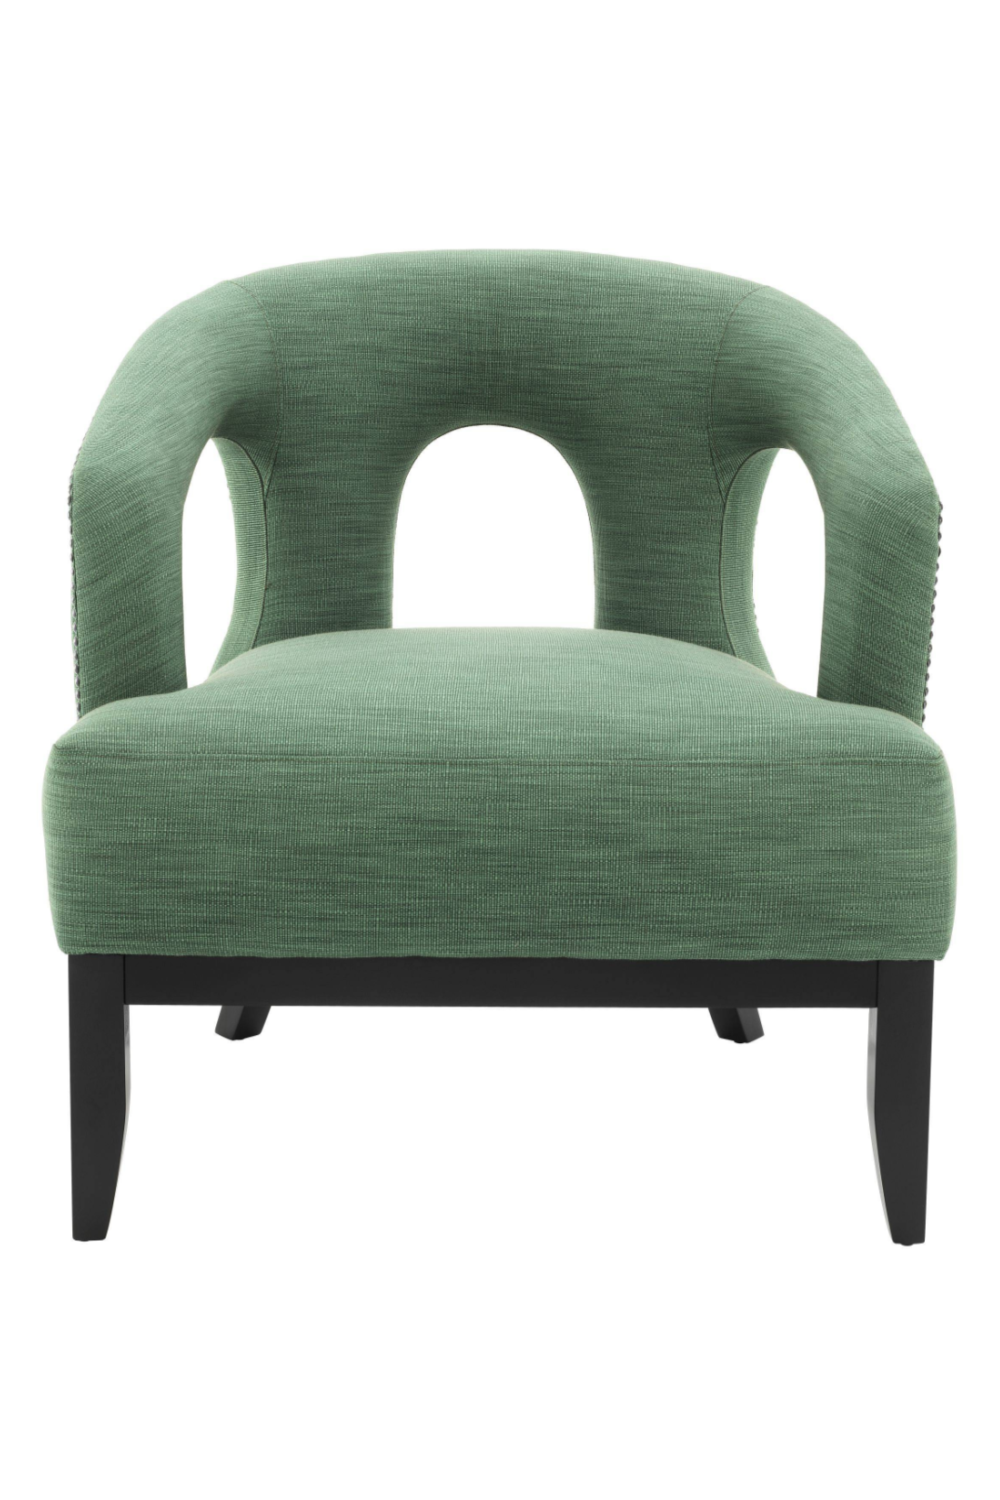 Green Upholstered Accent Chair | Eichholtz Adam |#1 Eichholtz Retailer